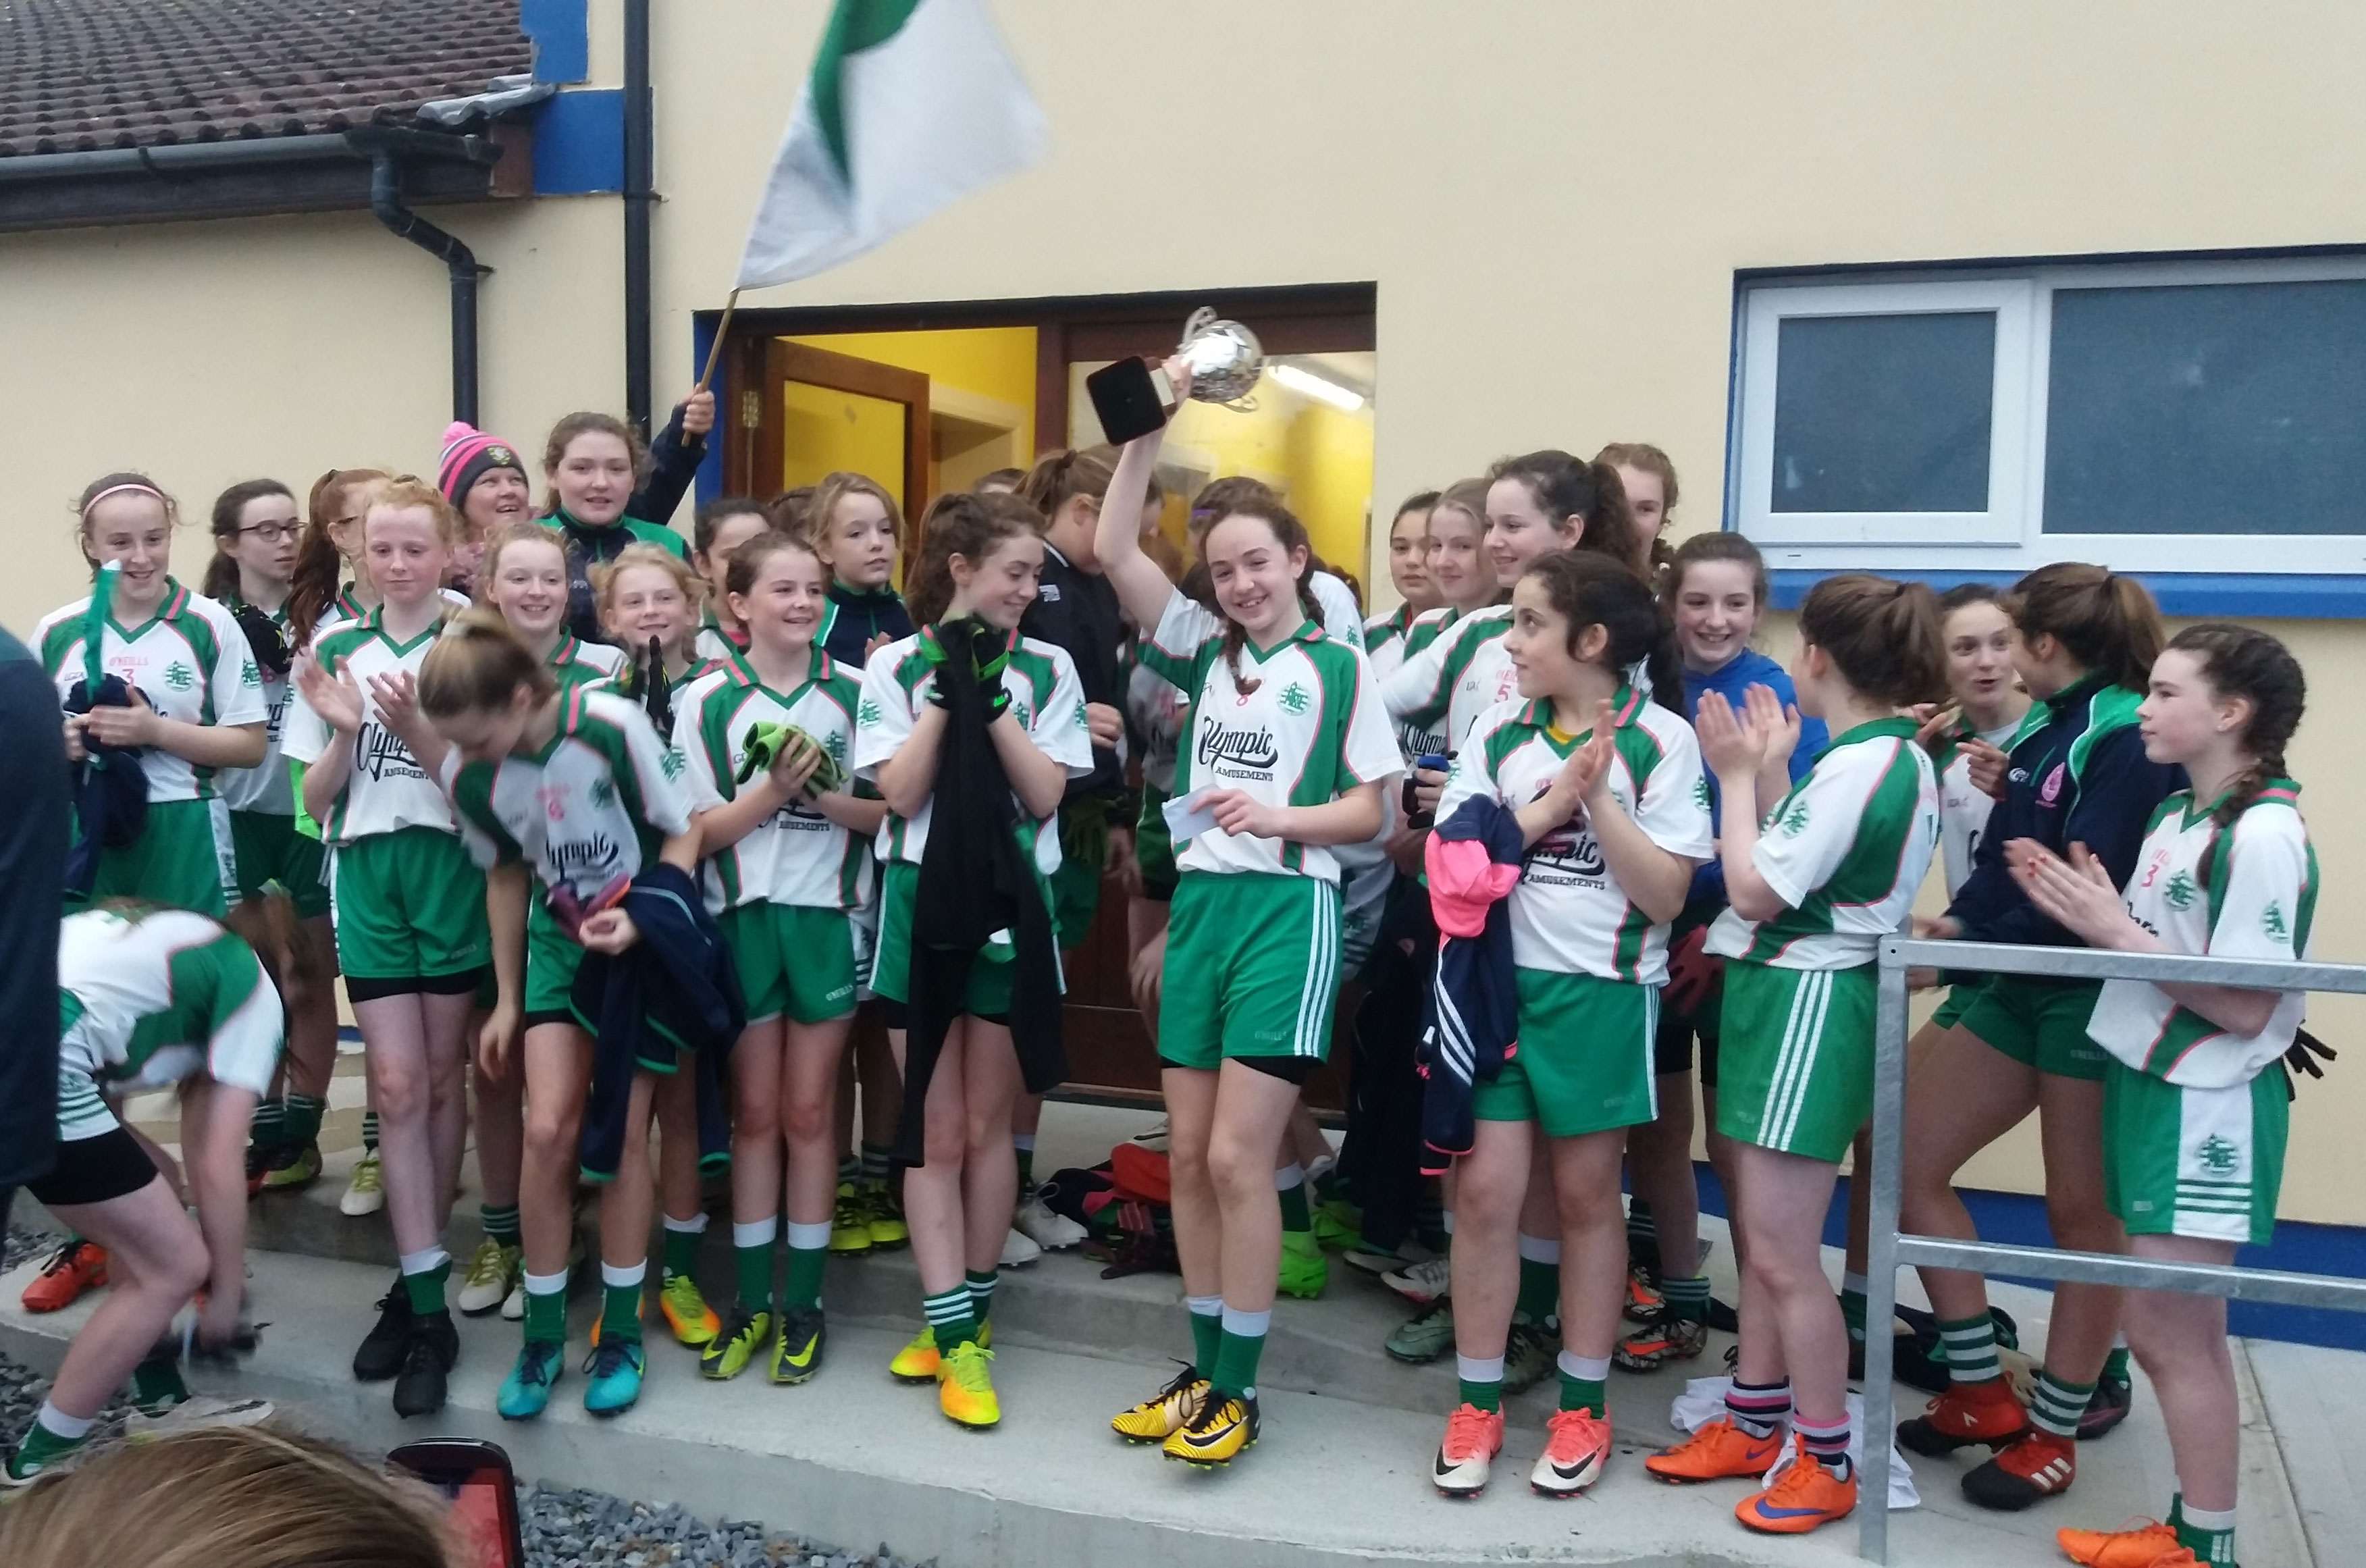 Aodh Ruadh captain Caoimhe Hughes-O'Brien raising the championship trophy.